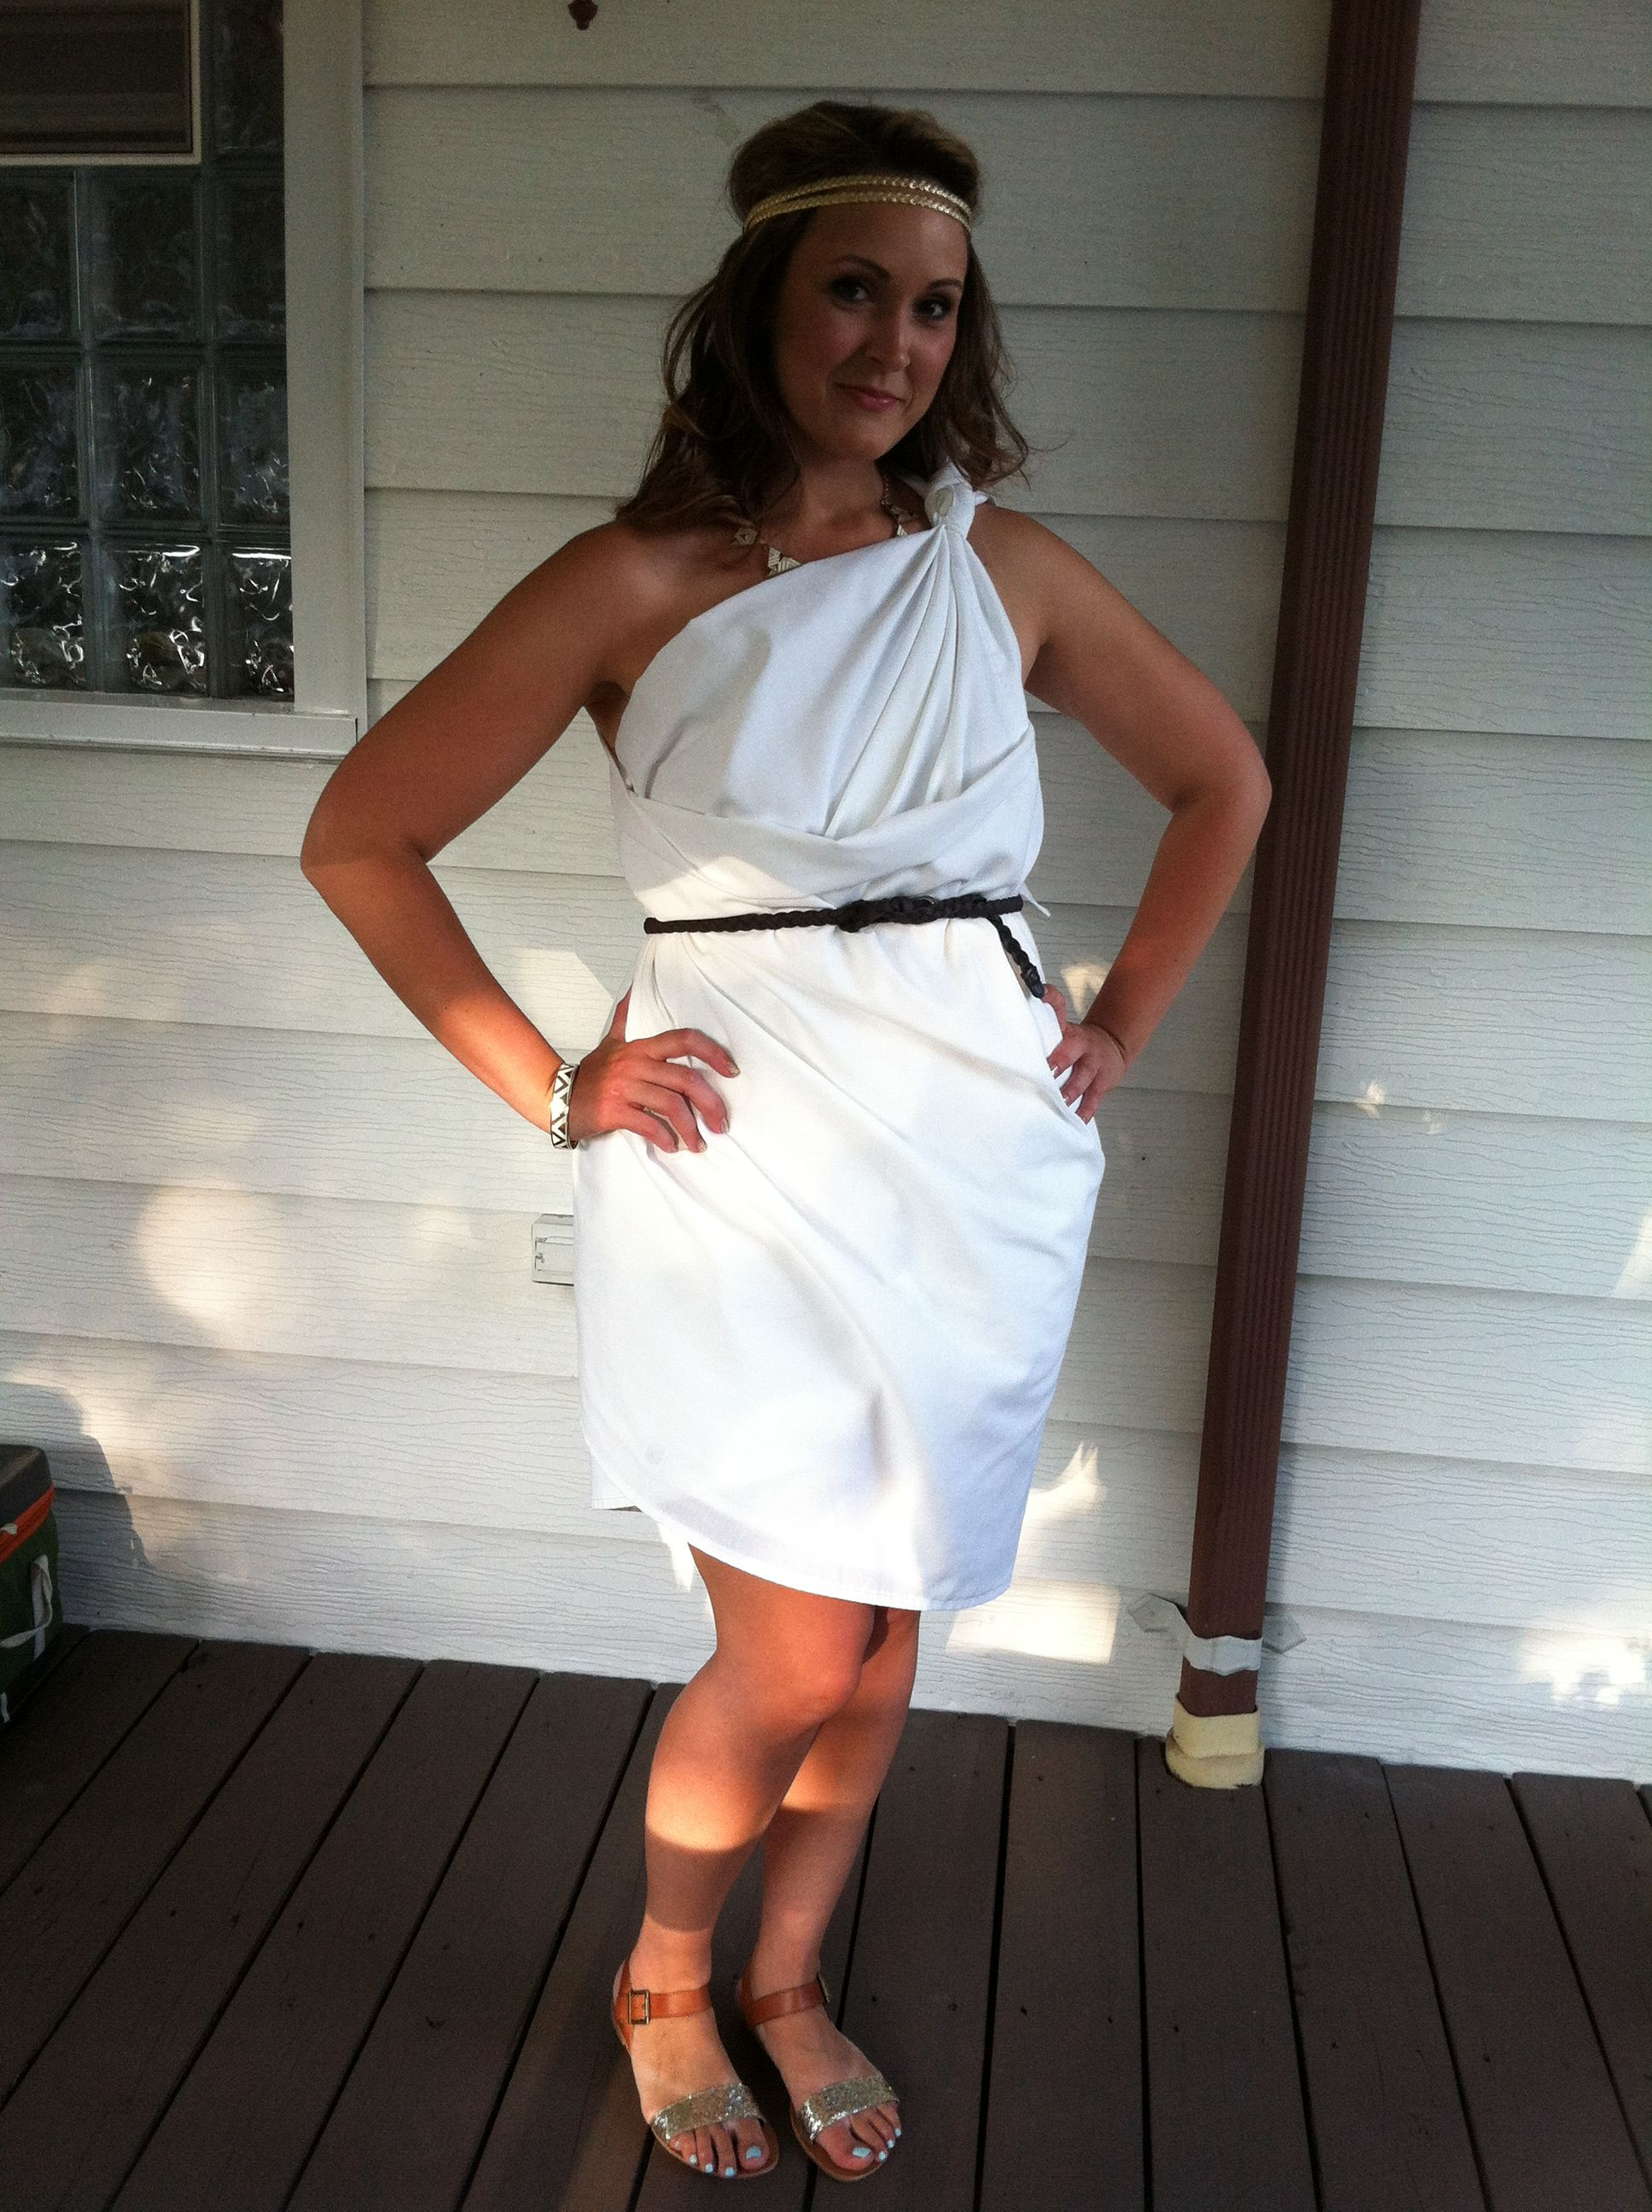 toga | toga party | DIY toga | toga toga toga | greek life | halloween costume | costume party | greek | college  sc 1 st  Pinterest & 3 Ways to Make a Toga Costume Out of a White Sheet | Greek Life ...